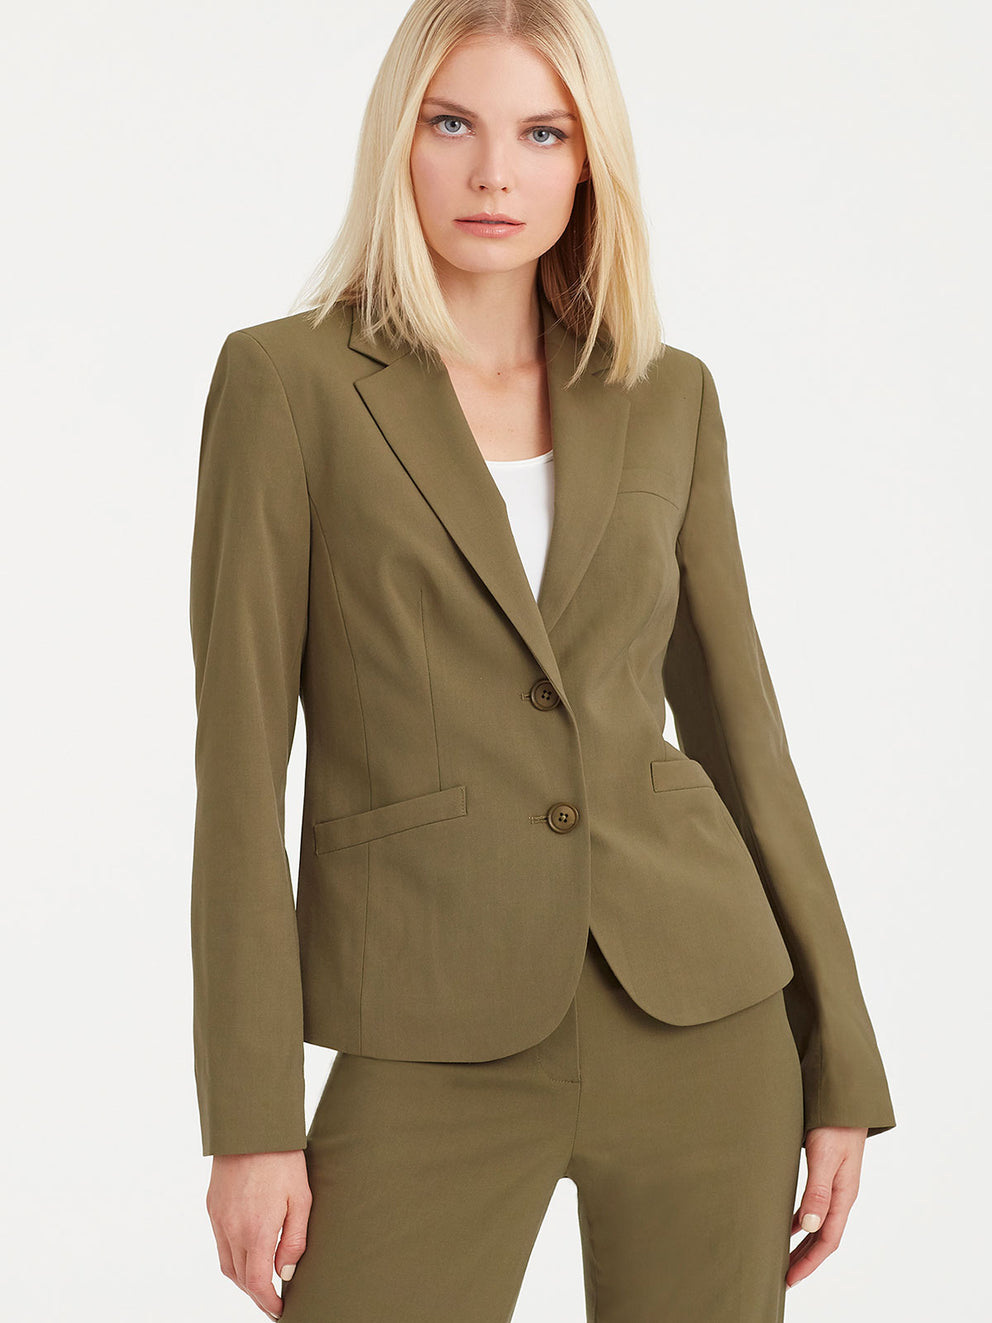 The Jones New York Washable Cropped Two-Button Jacket in color Fatigue Green - Image Position 1